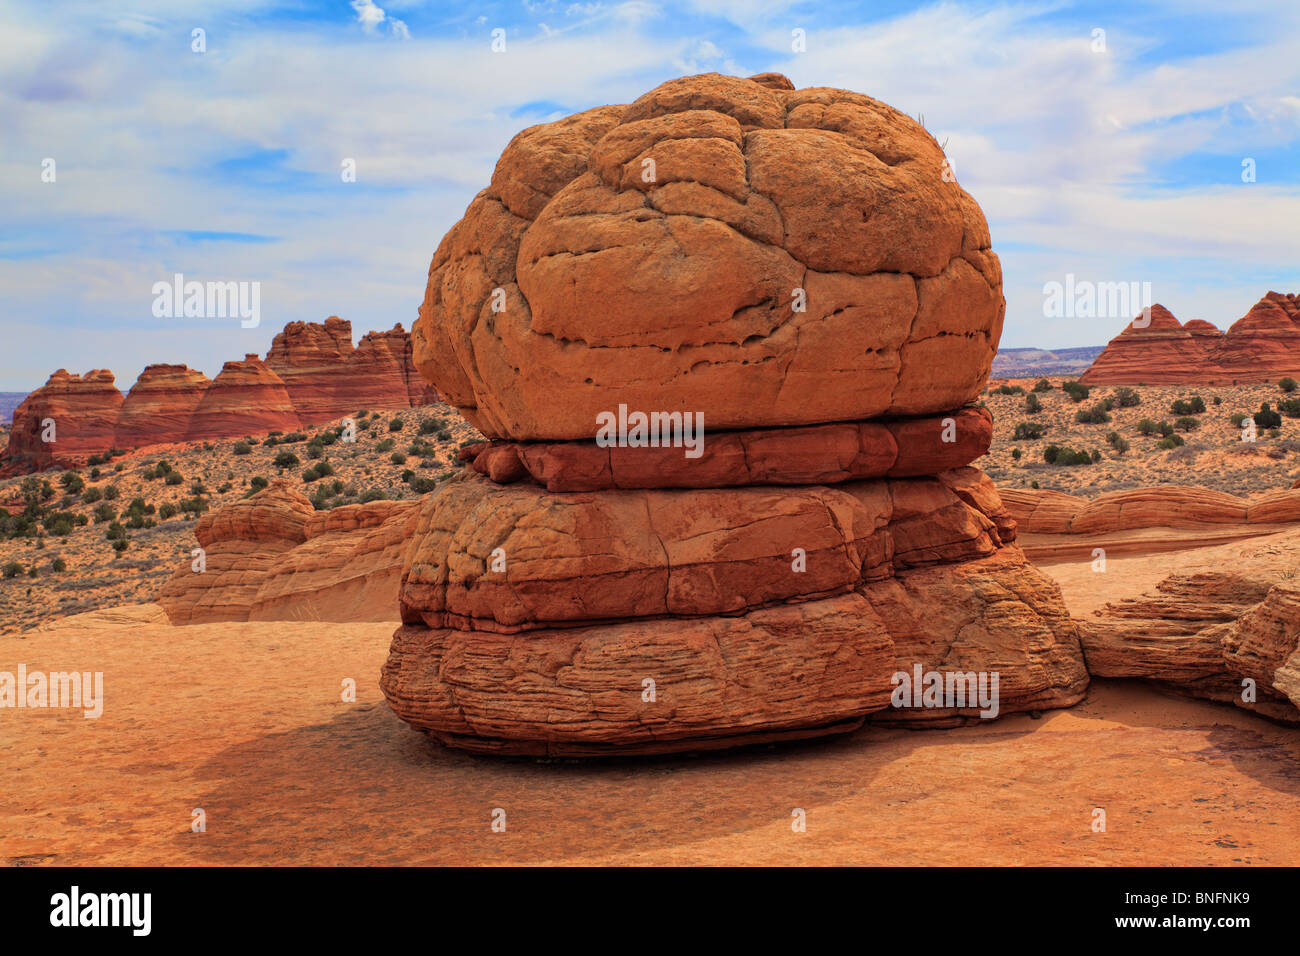 Eroded sandstone formation resembling a hamburger in Vermilion Cliffs National Monument, Arizona - Stock Image